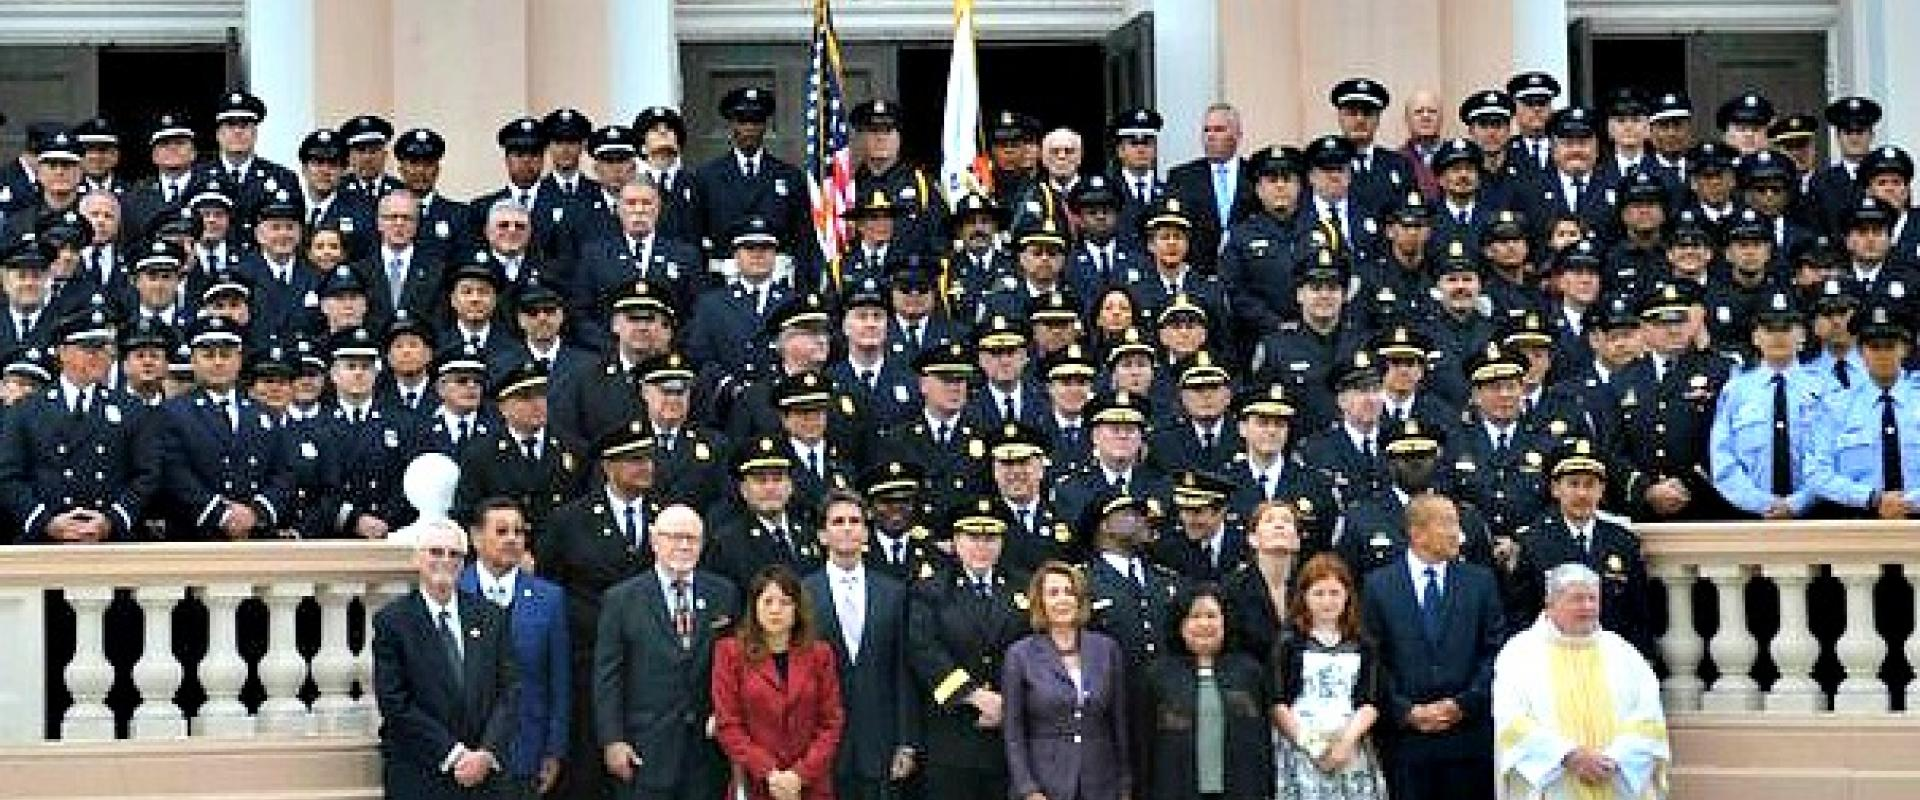 Congresswoman Pelosi joins members of the San Francisco Police and Fire Departments at St. Monica's in the Richmond for the 69th Annual Police and Fire Memorial Mass. Marking the 15th anniversary of the September 11th terrorist attacks, we continue to mar